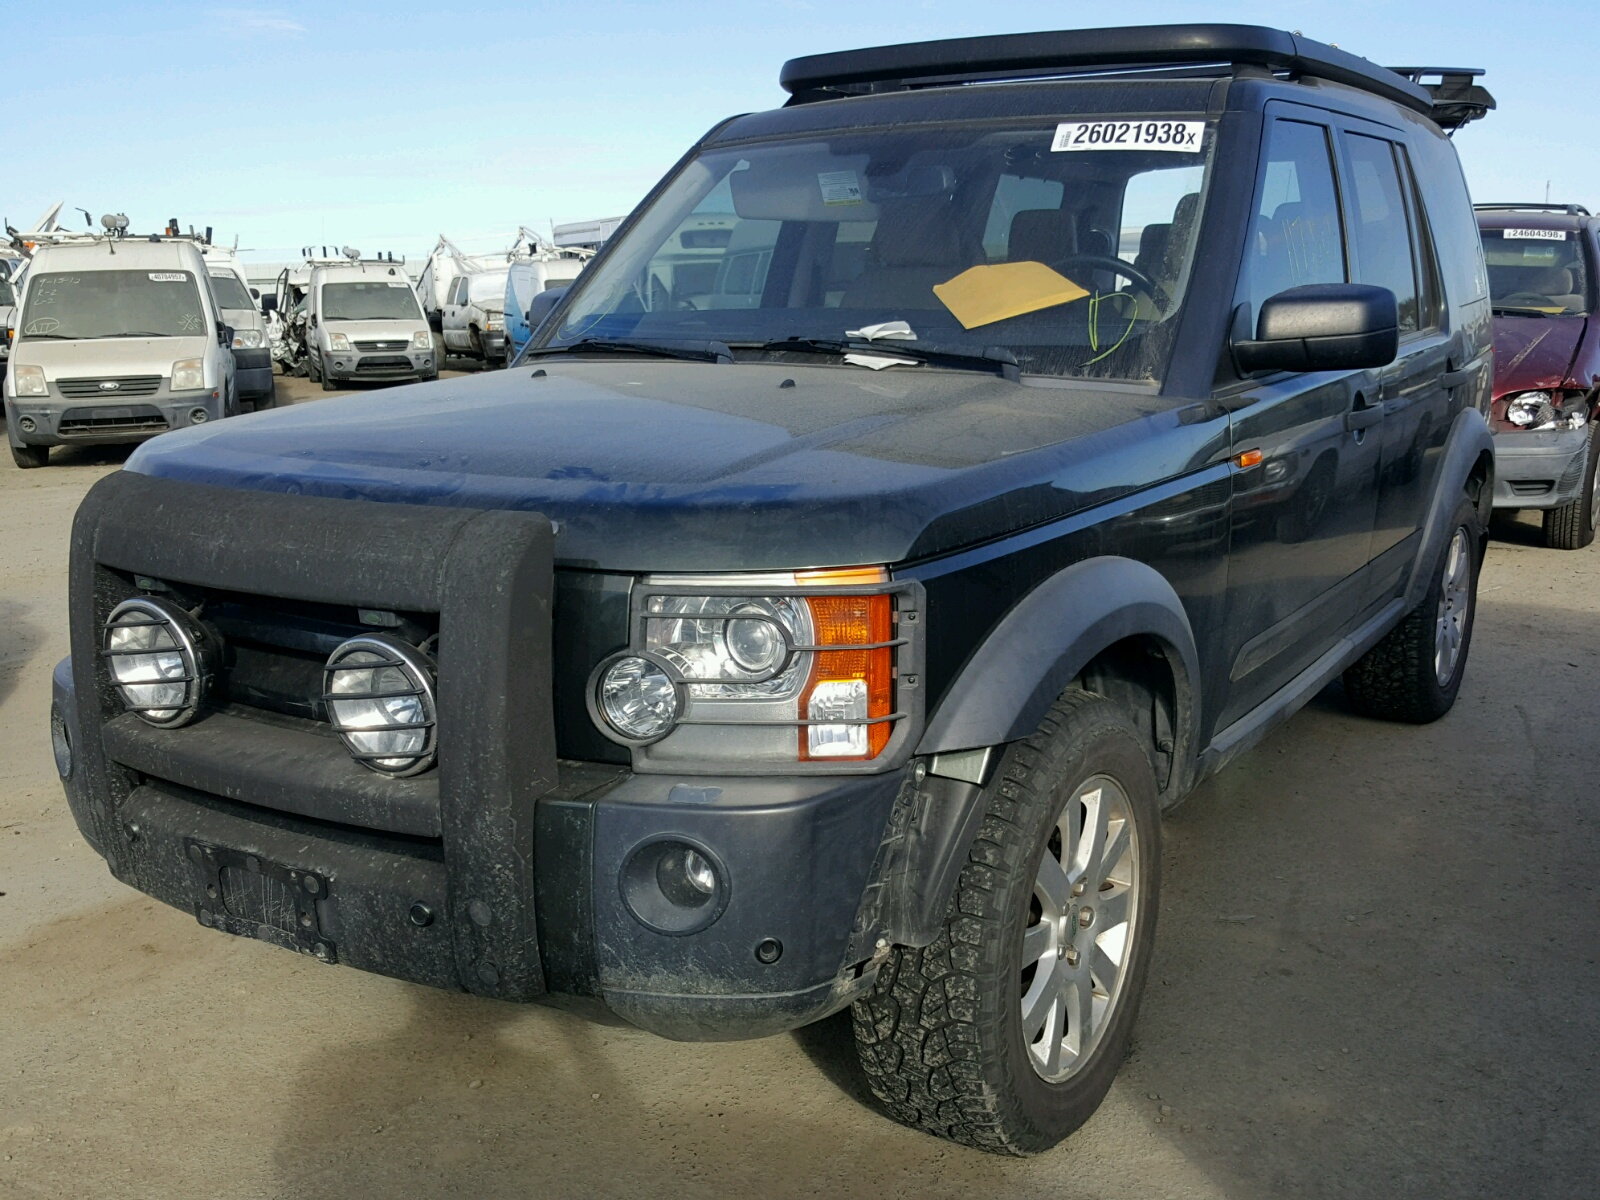 tech hse se for watch uk santorini in discovery black sale landrover london youtube automatic land rover